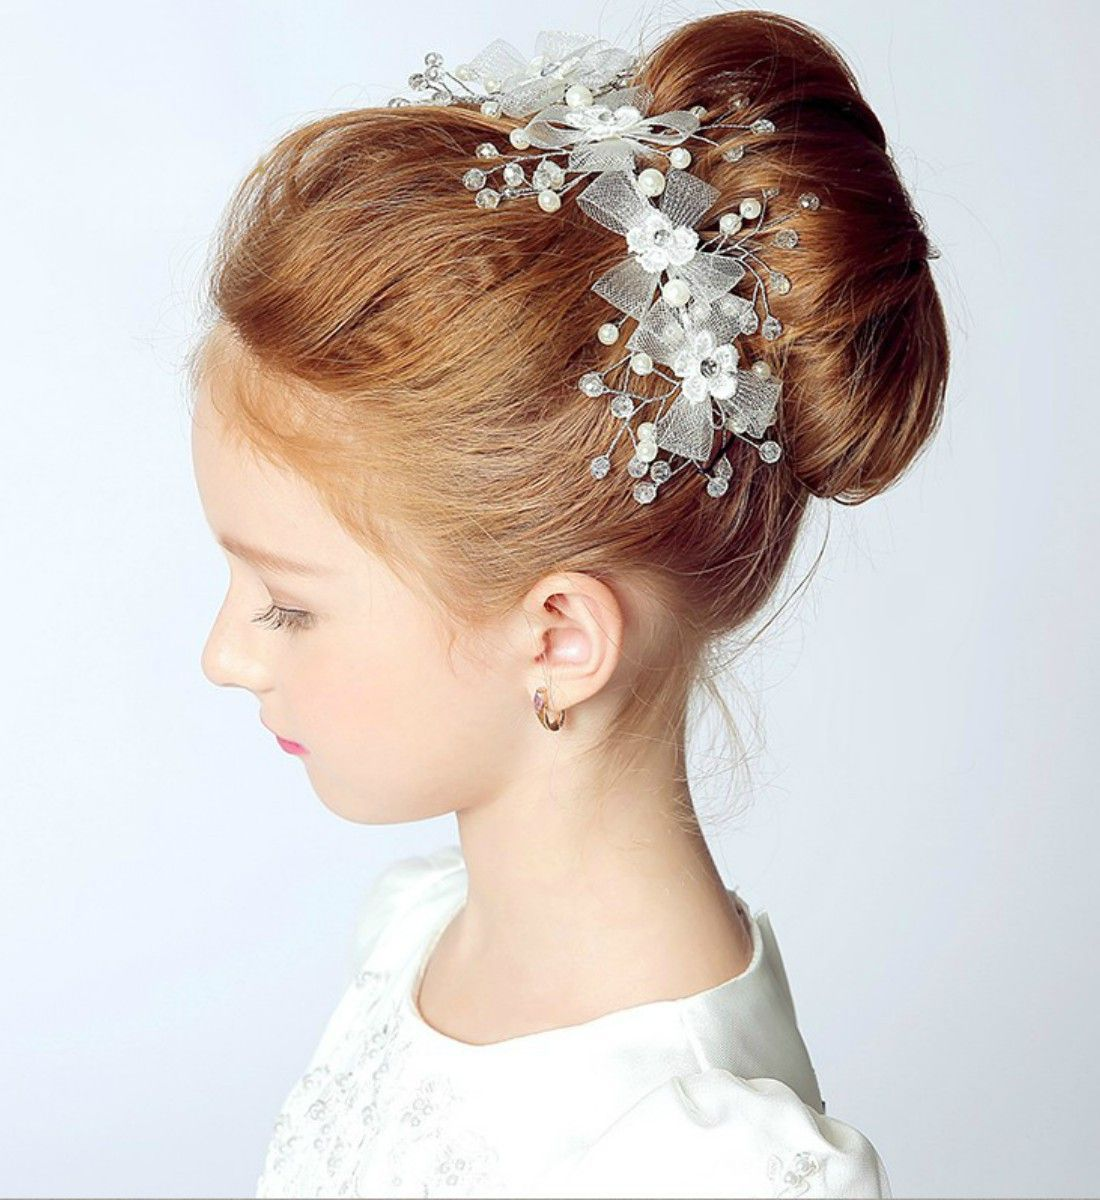 Flower Hair Accessory  Flower hair Hair accessories and Flower